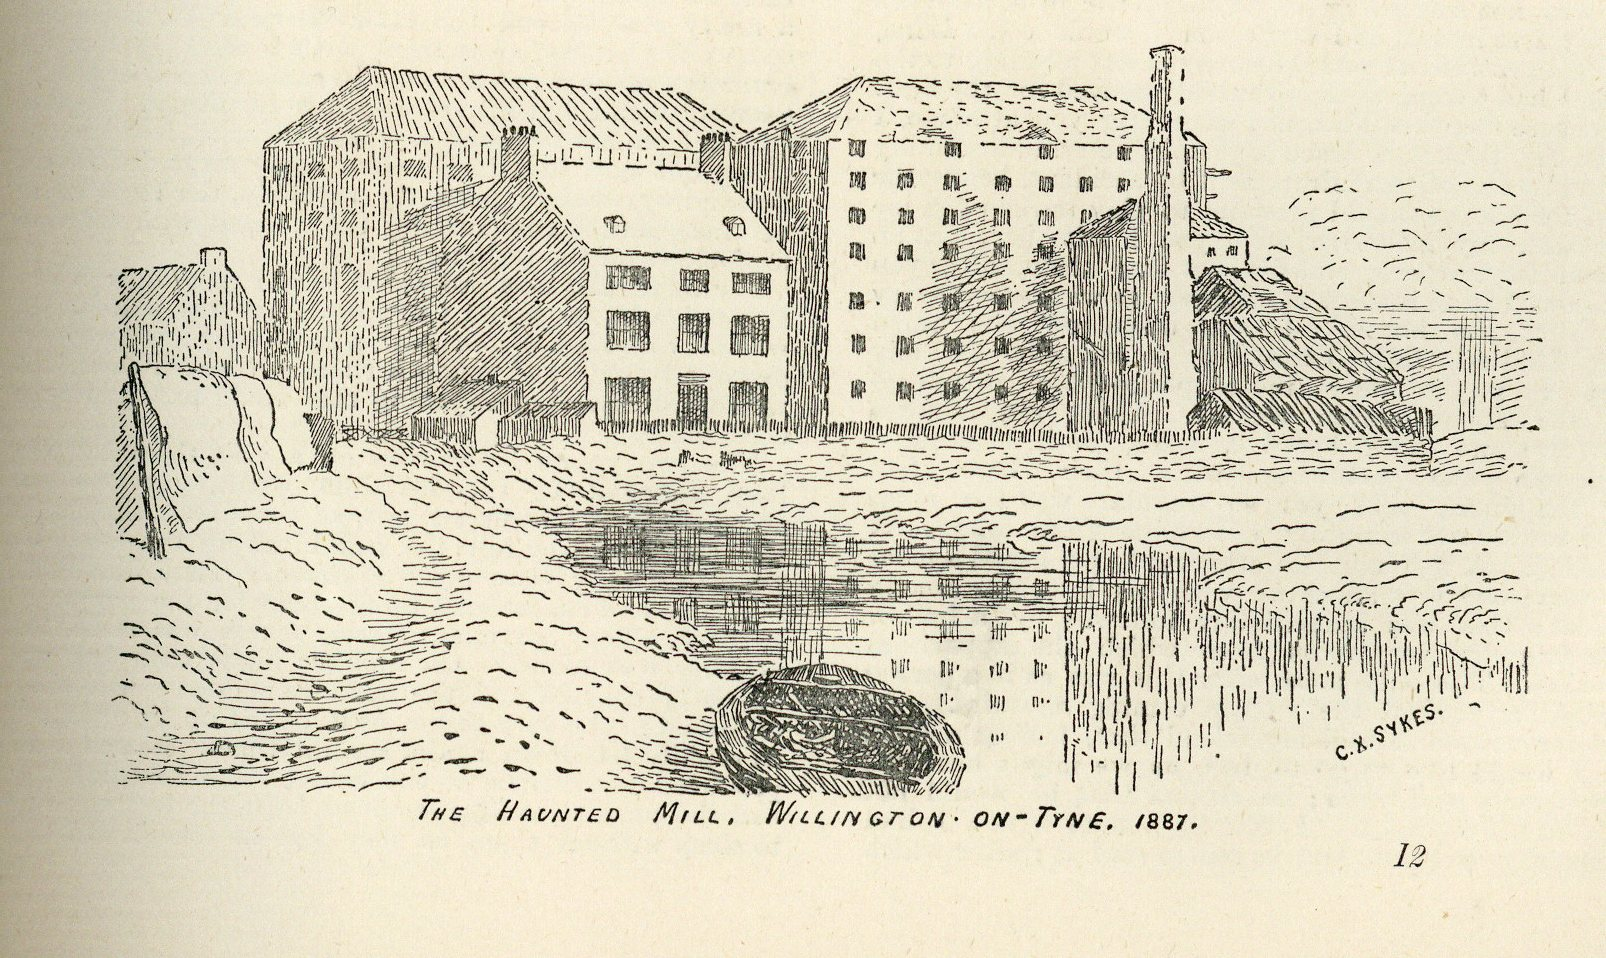 Image of The Haunted Mill in Willington in 1887, taken from 'The Monthly Chronicle of North-Country Lore and Legend, 1887' (Edwin Clarke Local Collection 2066)